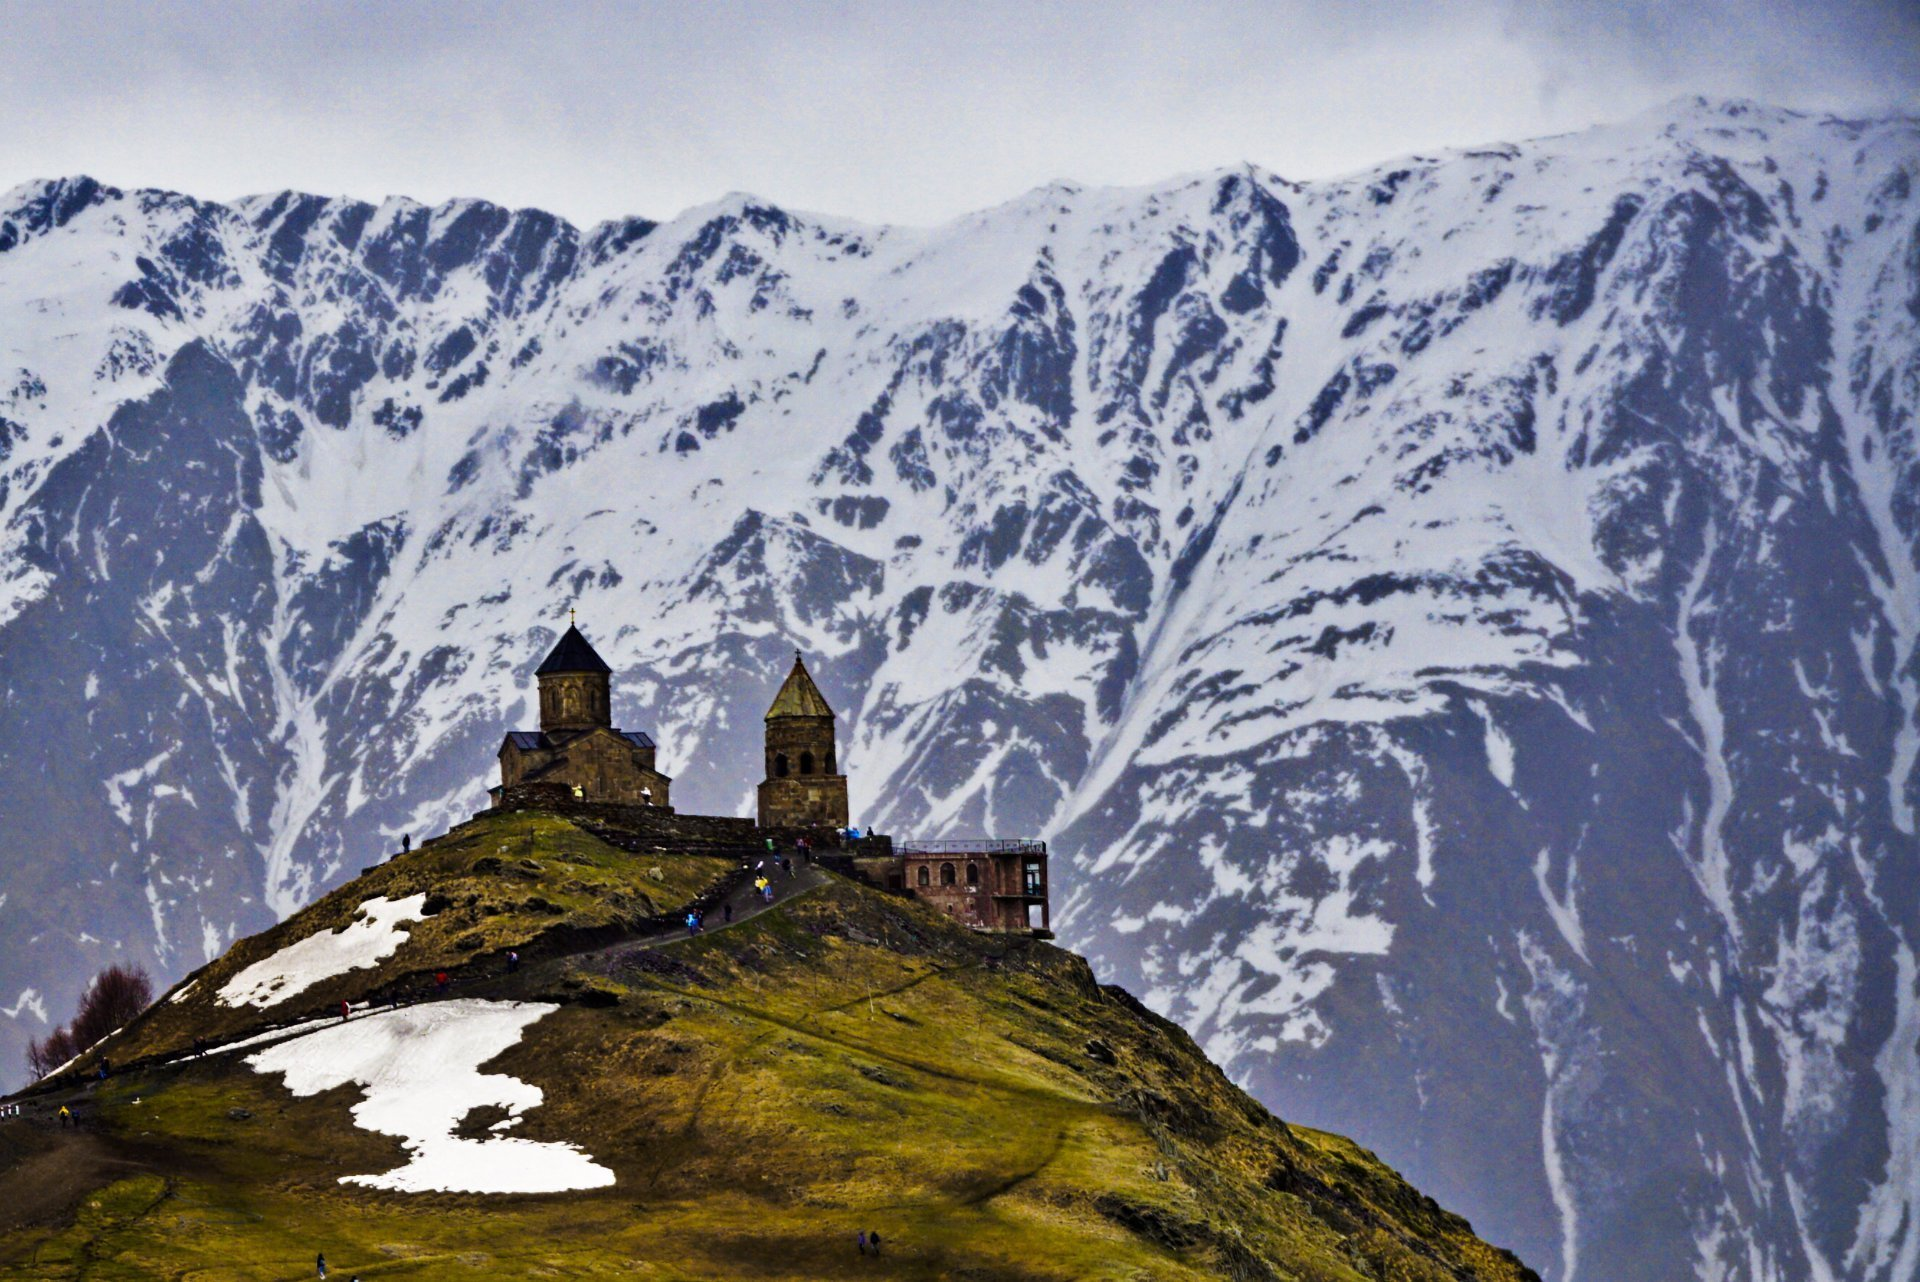 Gergeti Trinity Church, Kazbegi, Georgia – Experiencing the Globe